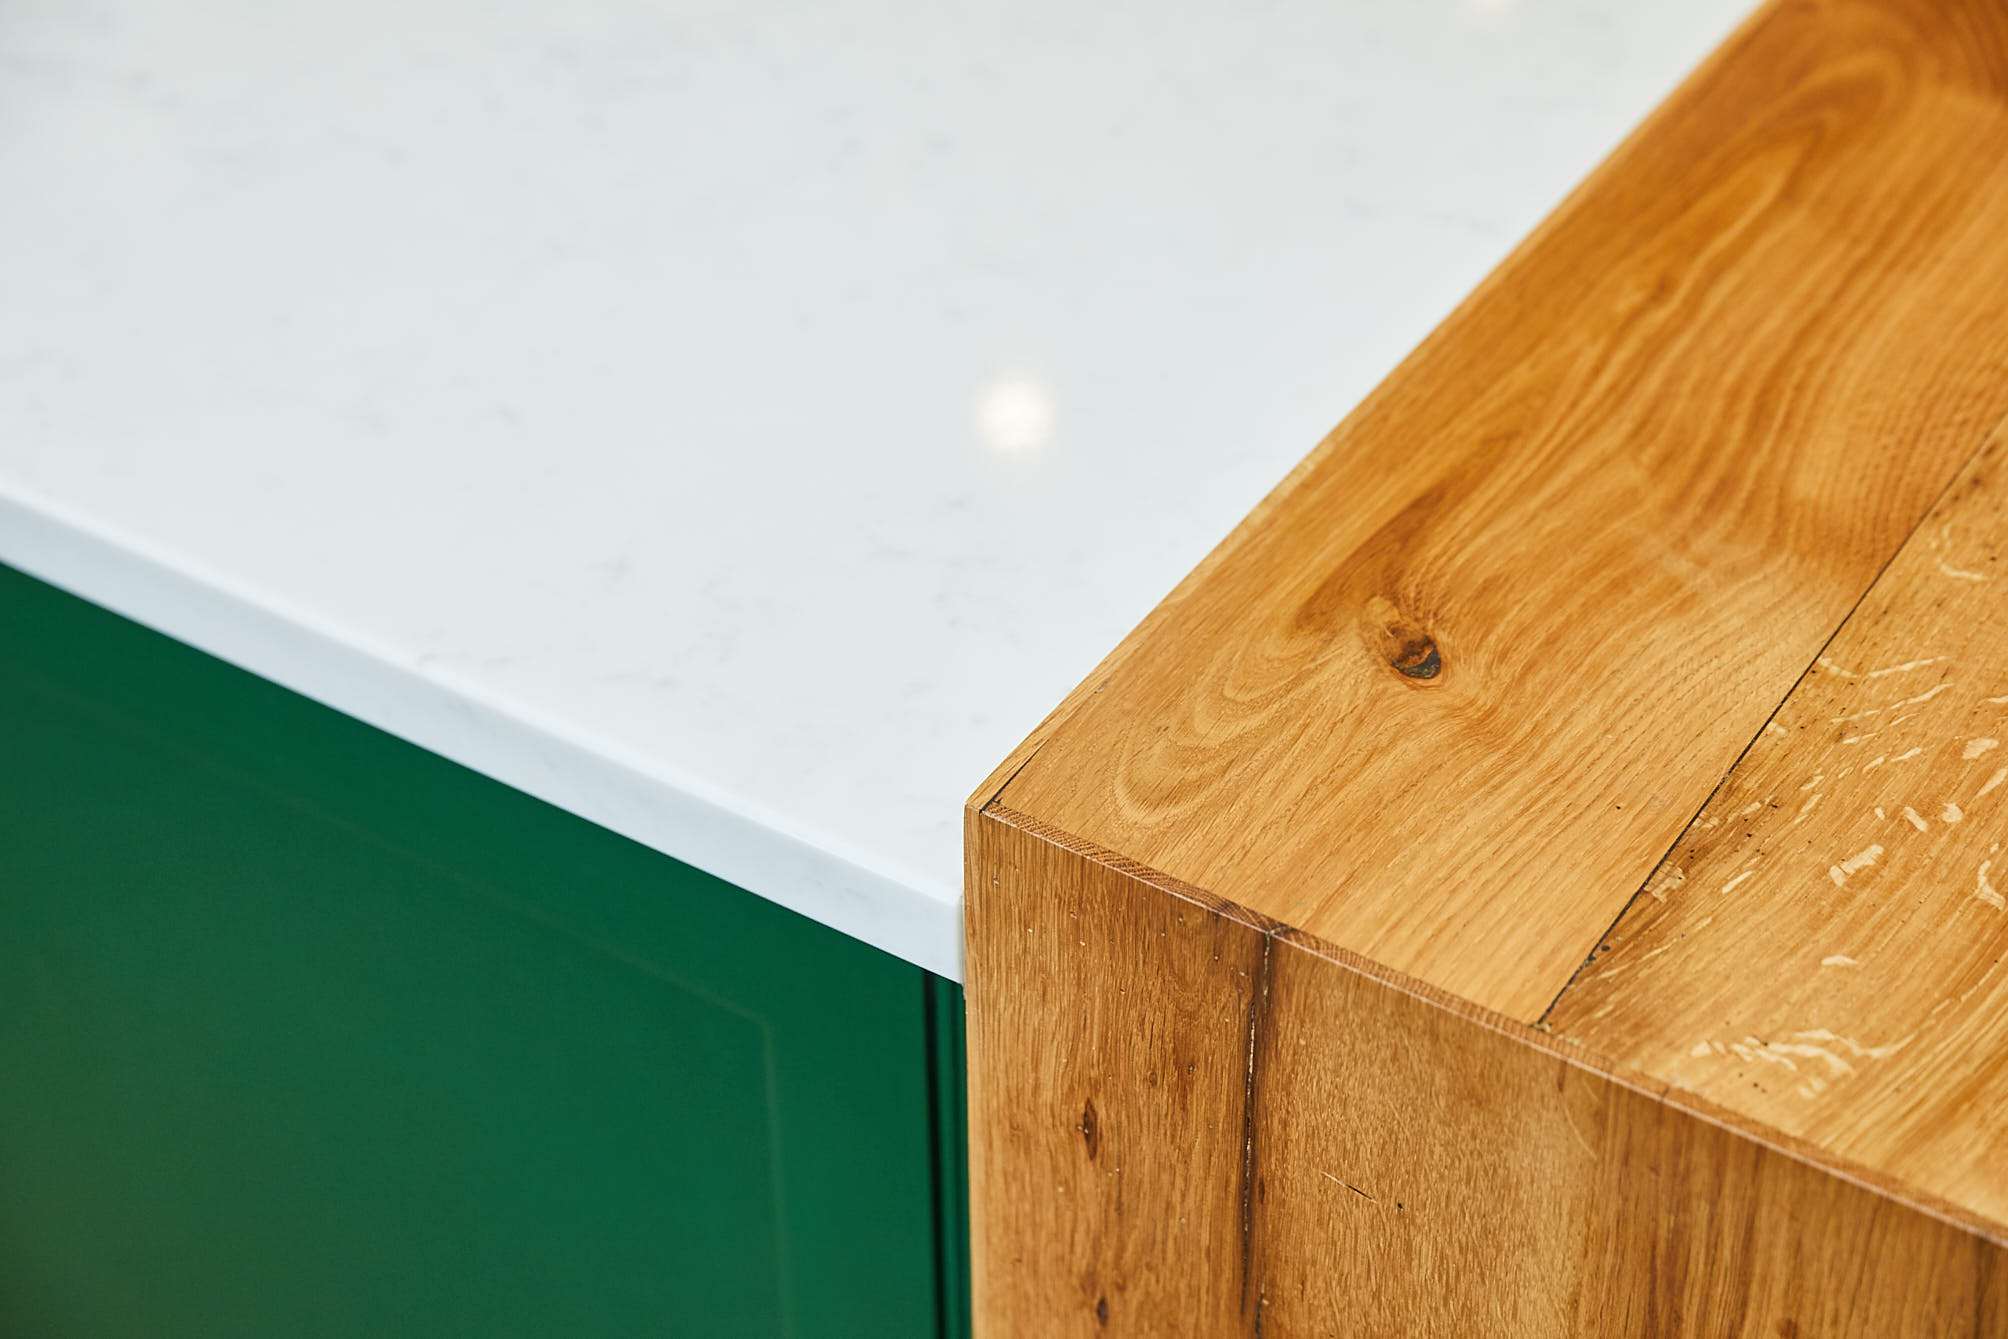 Oak breakfast bar against whitre quartz worktop and green painted kitchen cabinets